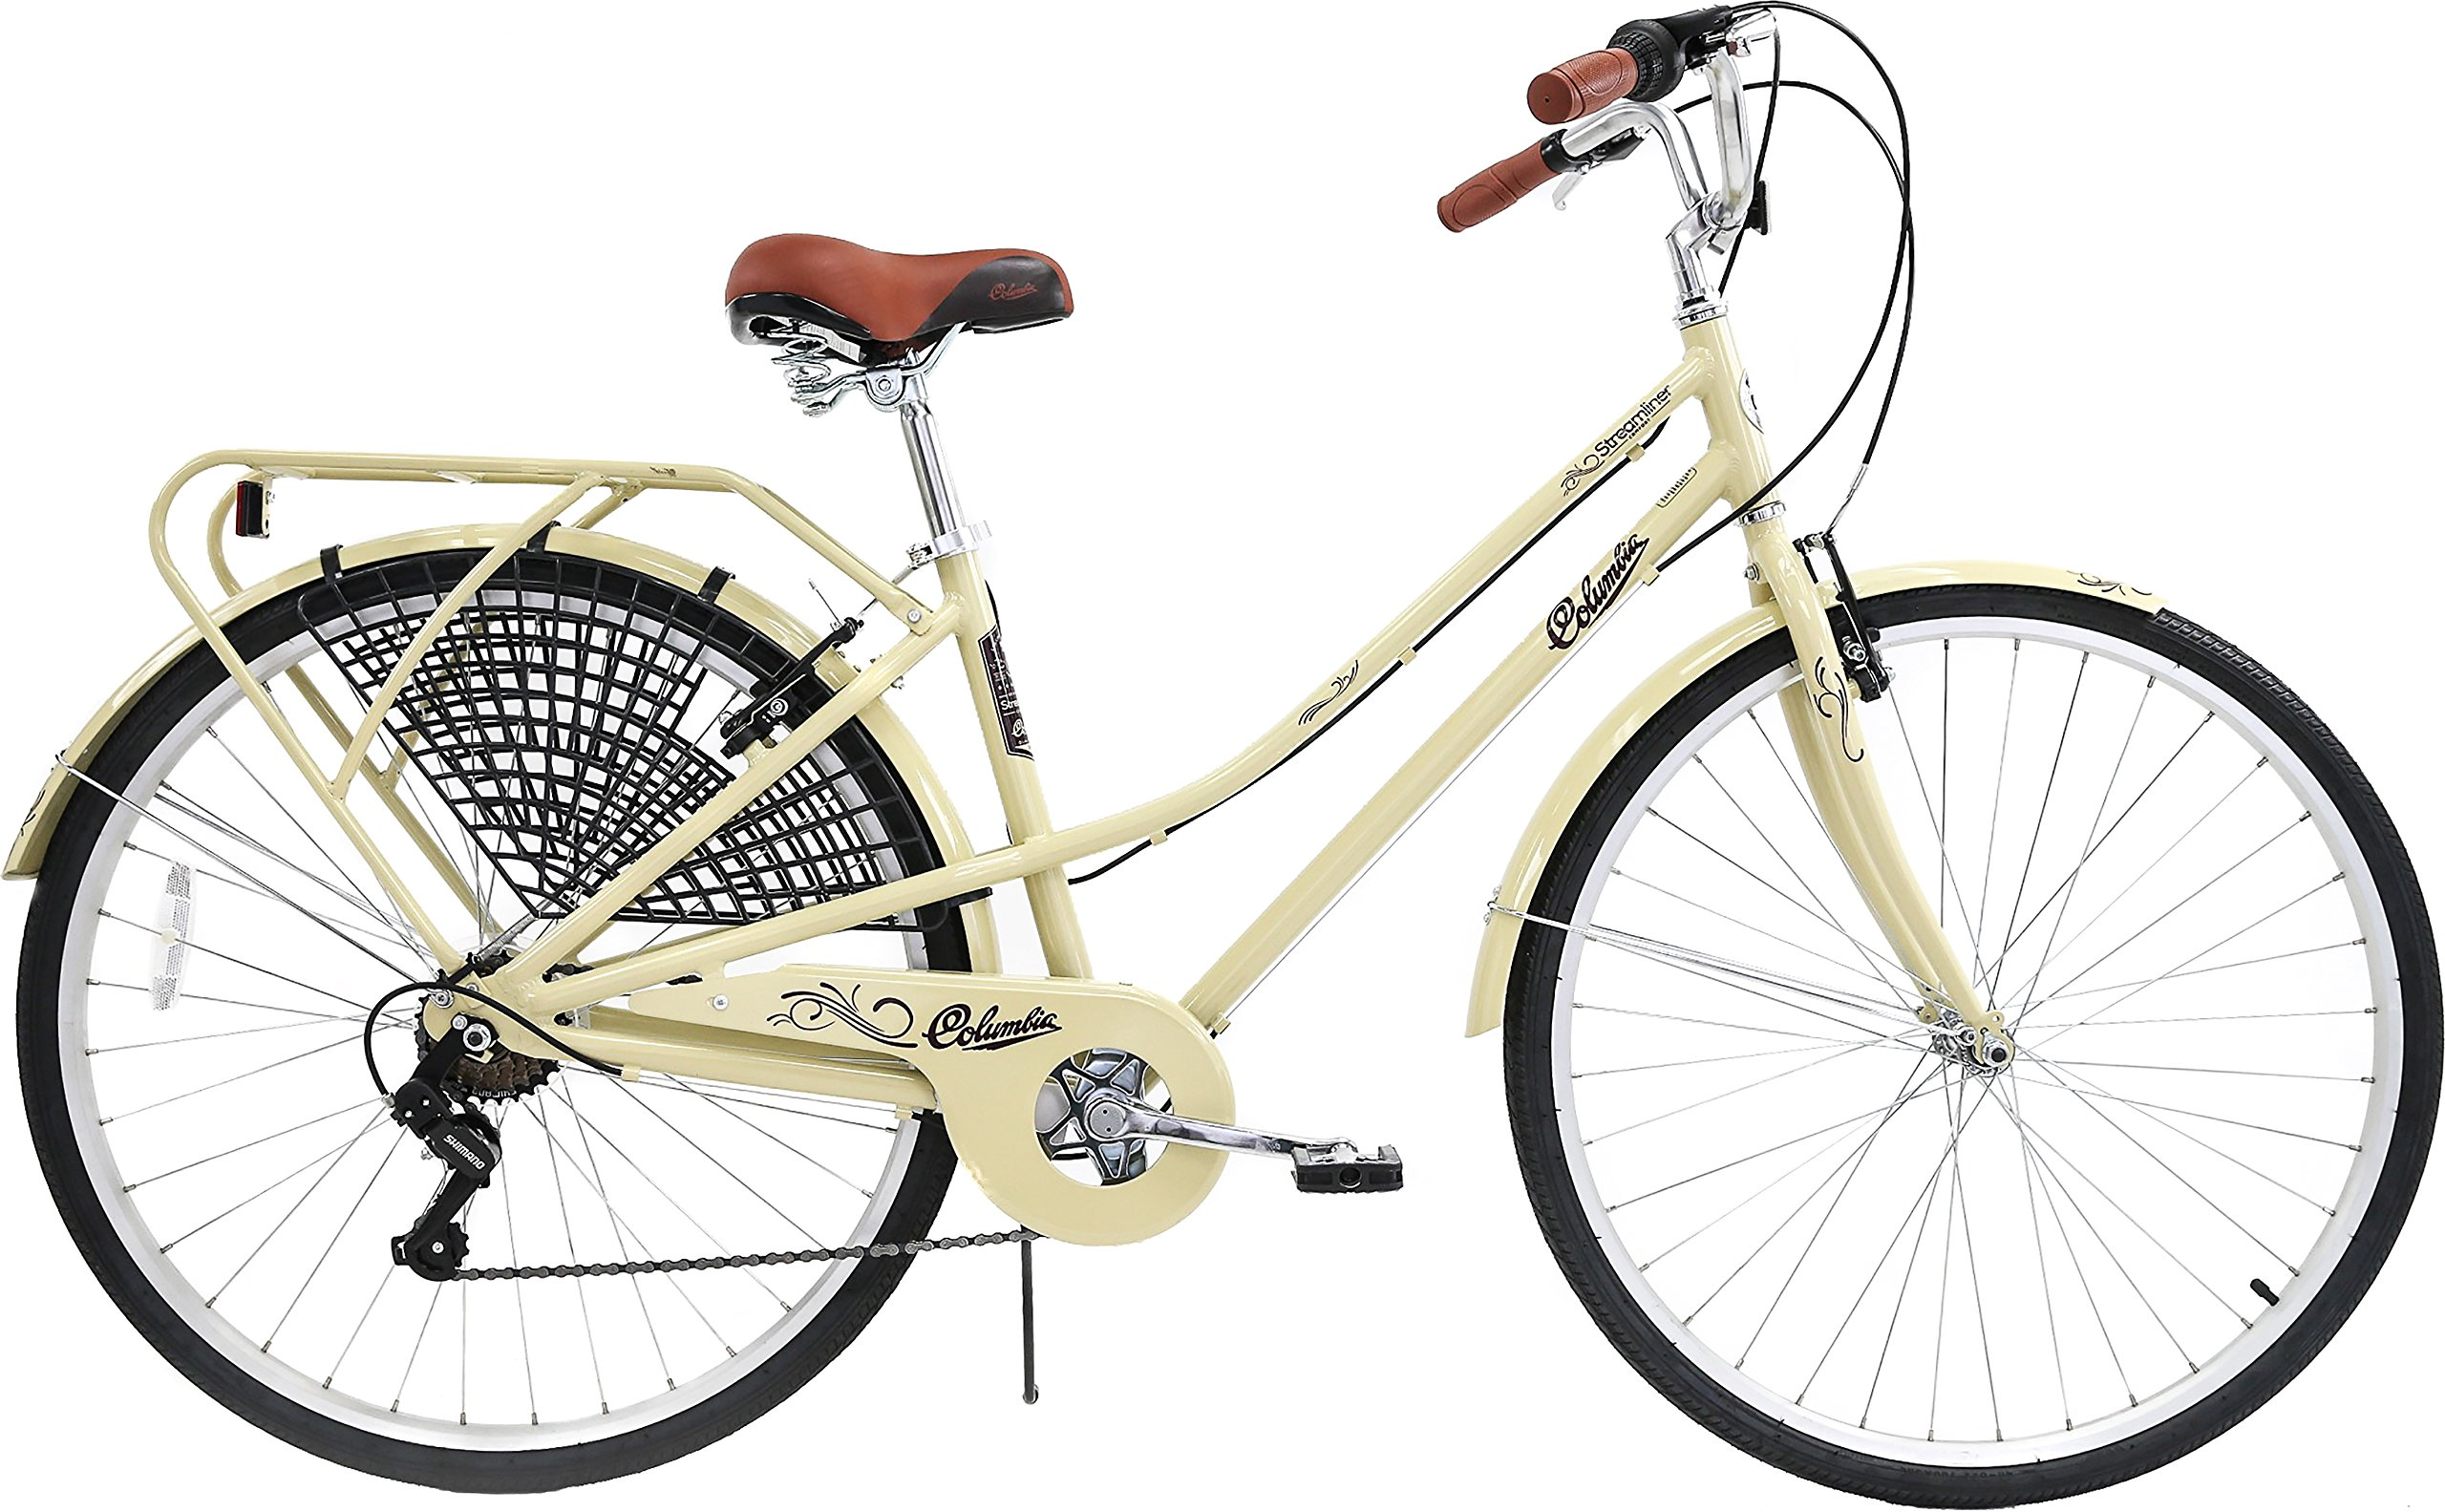 Columbia Bicycles Streamliner 700c Women's 7-Speed City Cruiser Bike by Columbia Bicycles (Image #5)